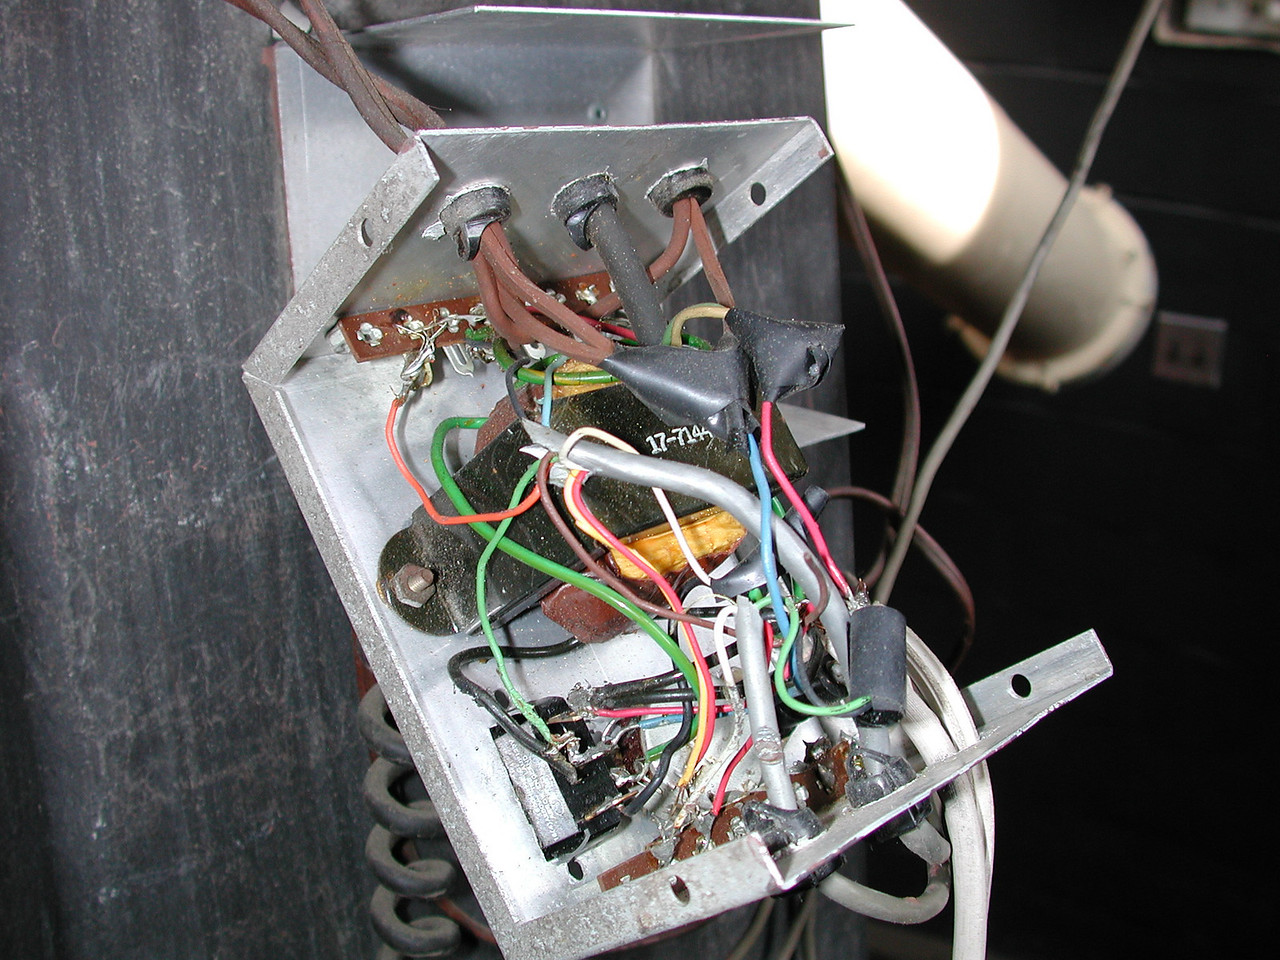 Control box could use re-wiring.